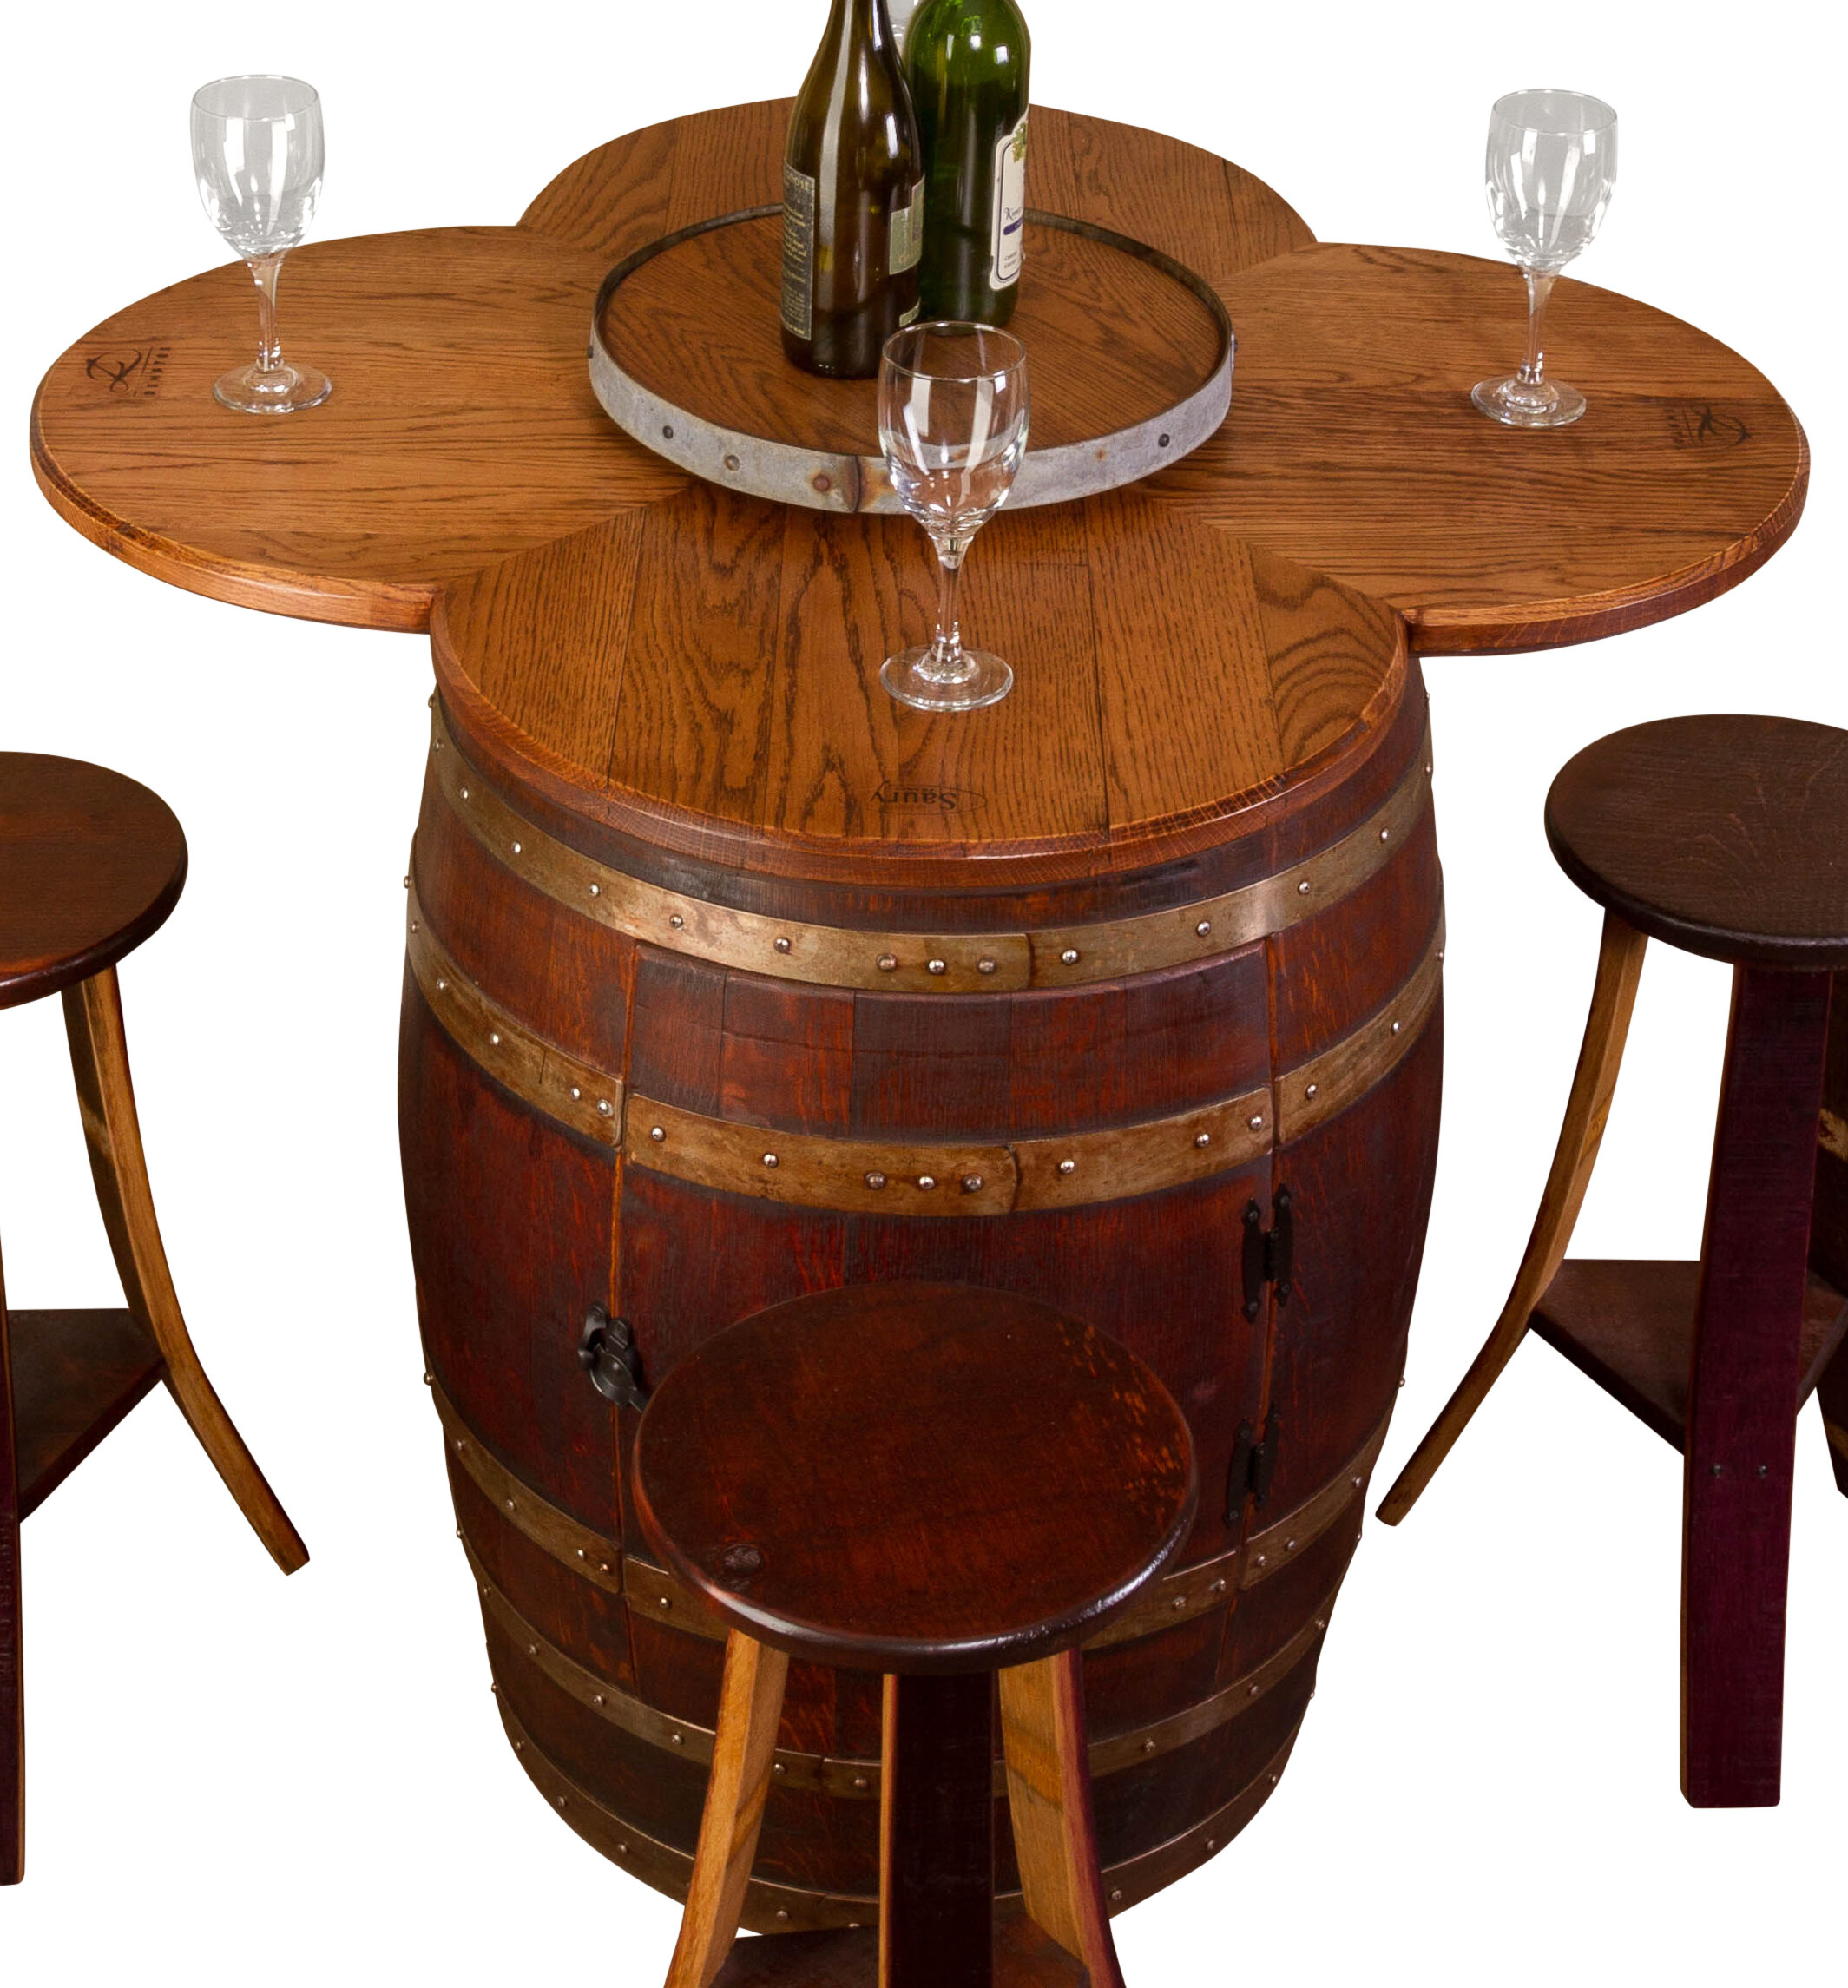 Wondrous Reclaimed Wine Barrel Tables Wayfair Download Free Architecture Designs Scobabritishbridgeorg